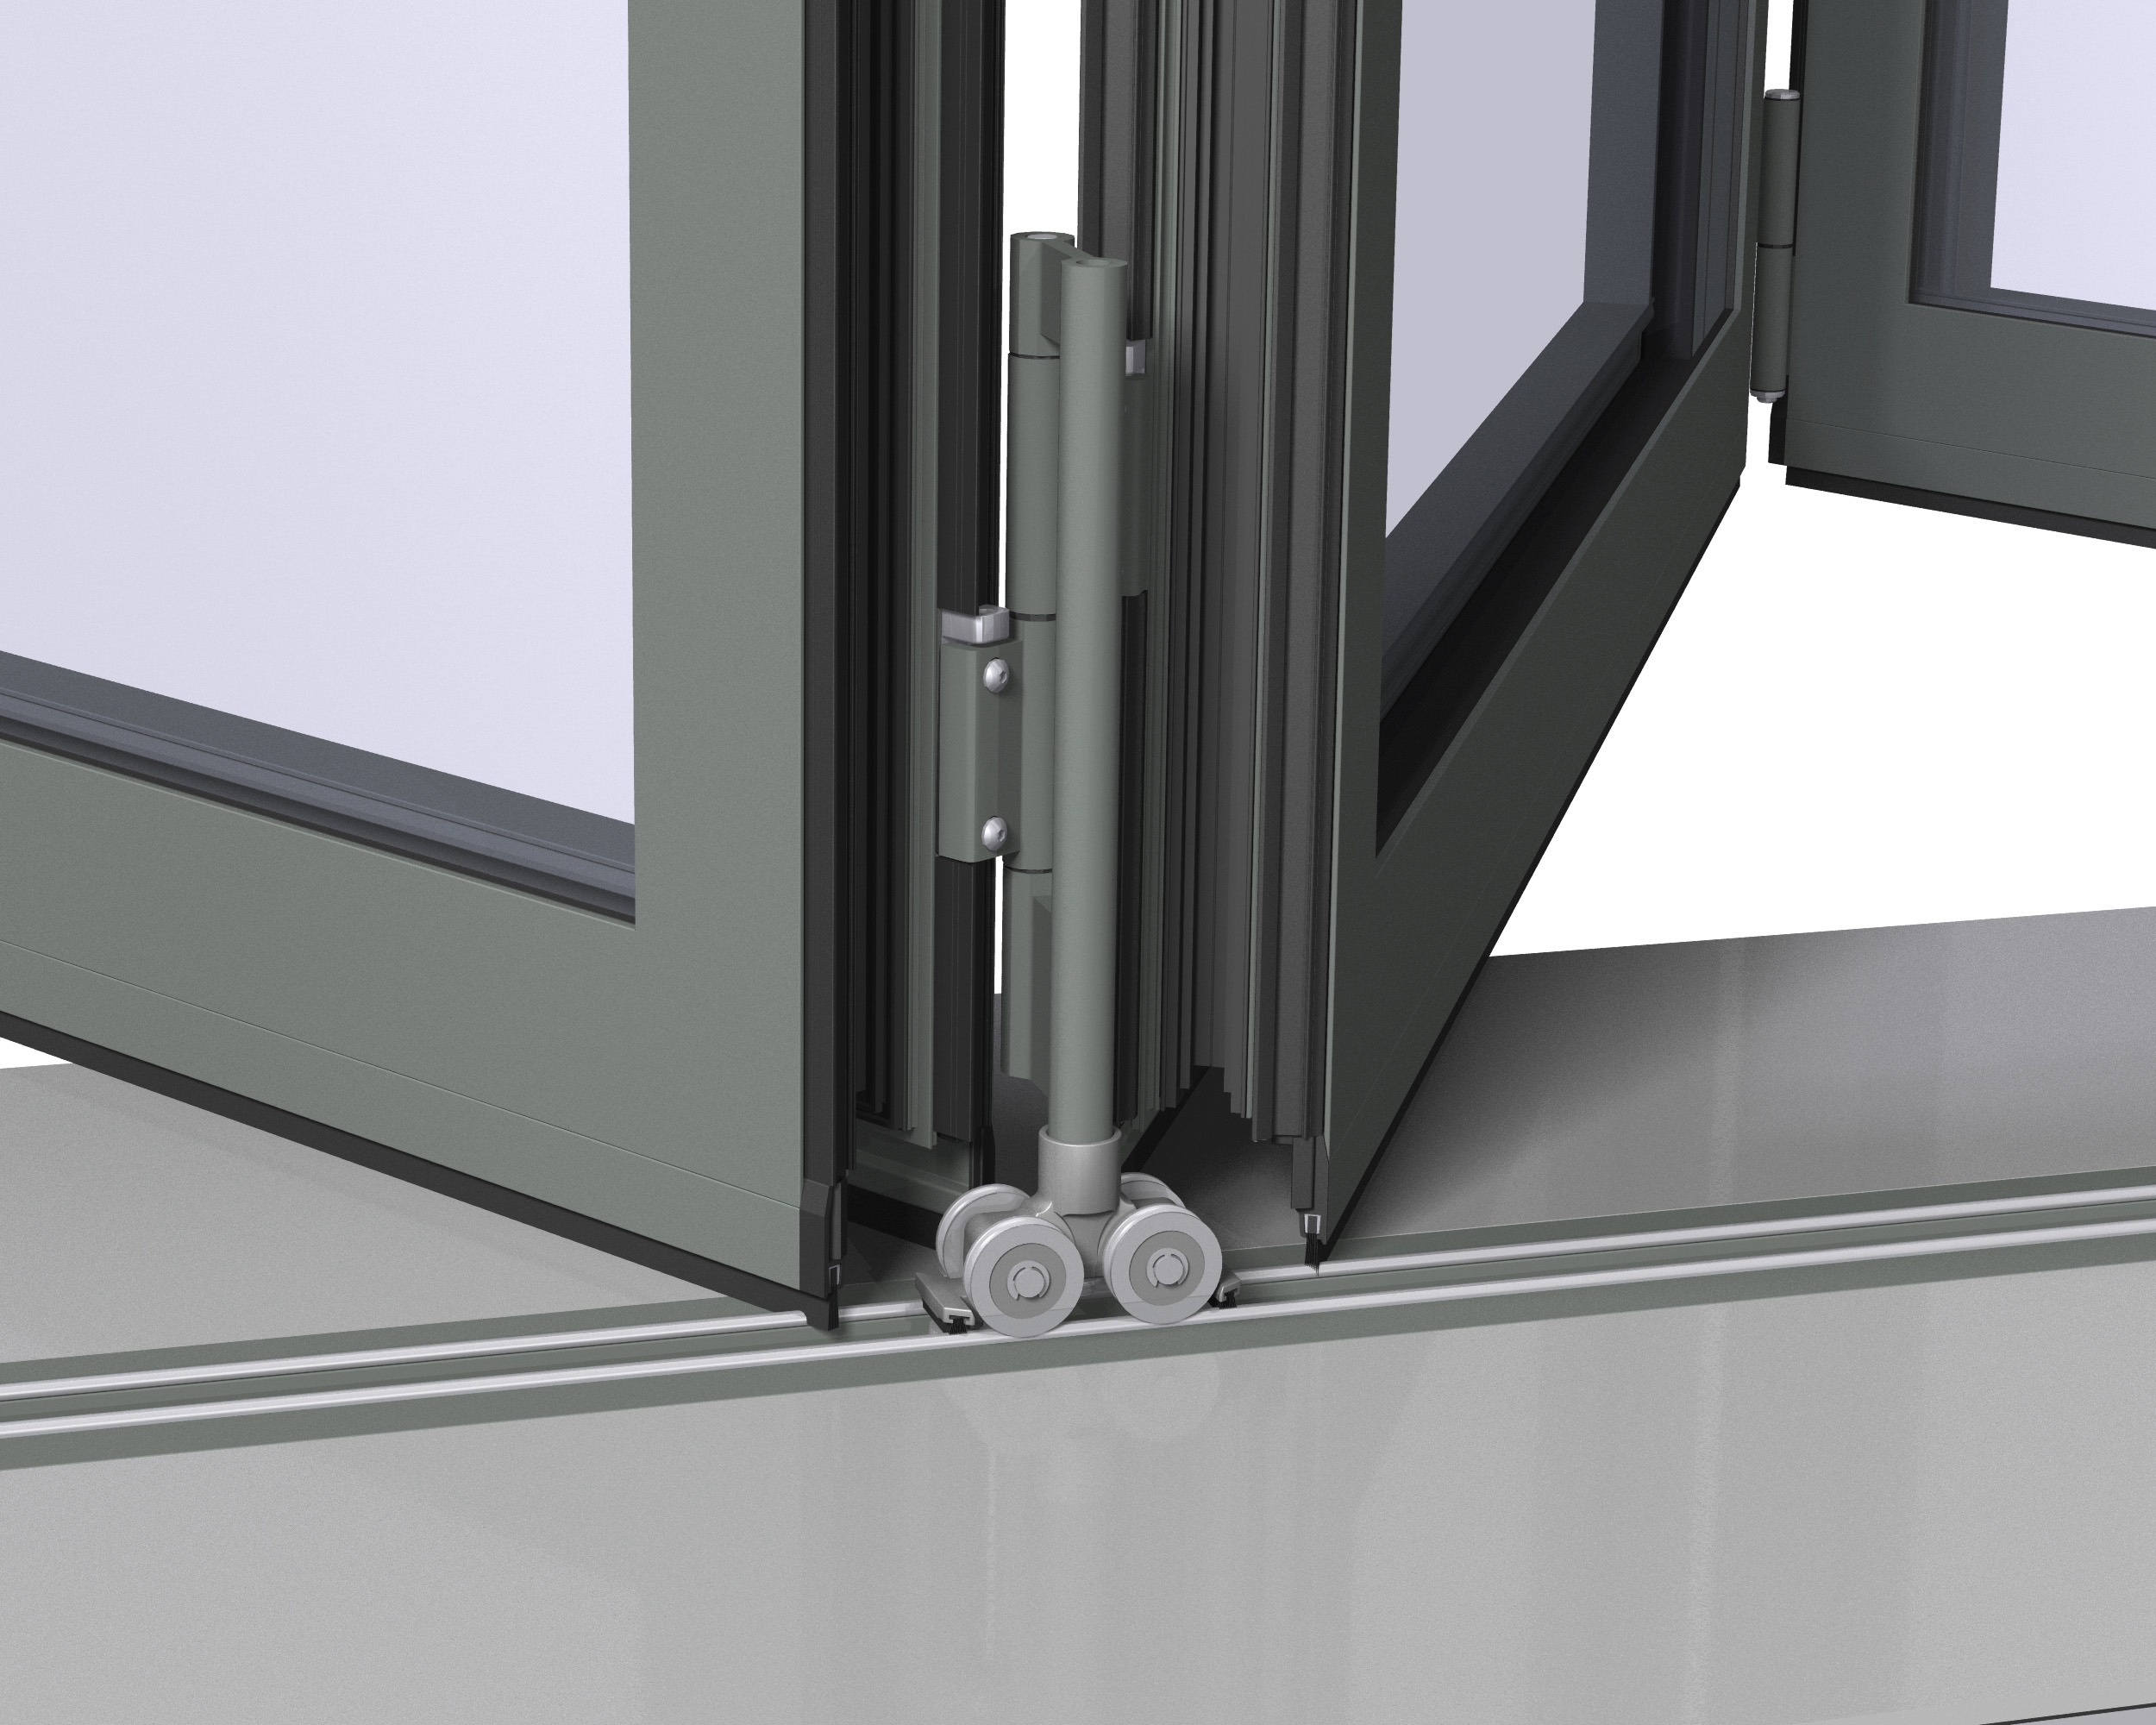 Best Pocket Door Rollers Best Pocket Door Rollers sliding door hardware track roller dors and windows decoration 2500 X 2000